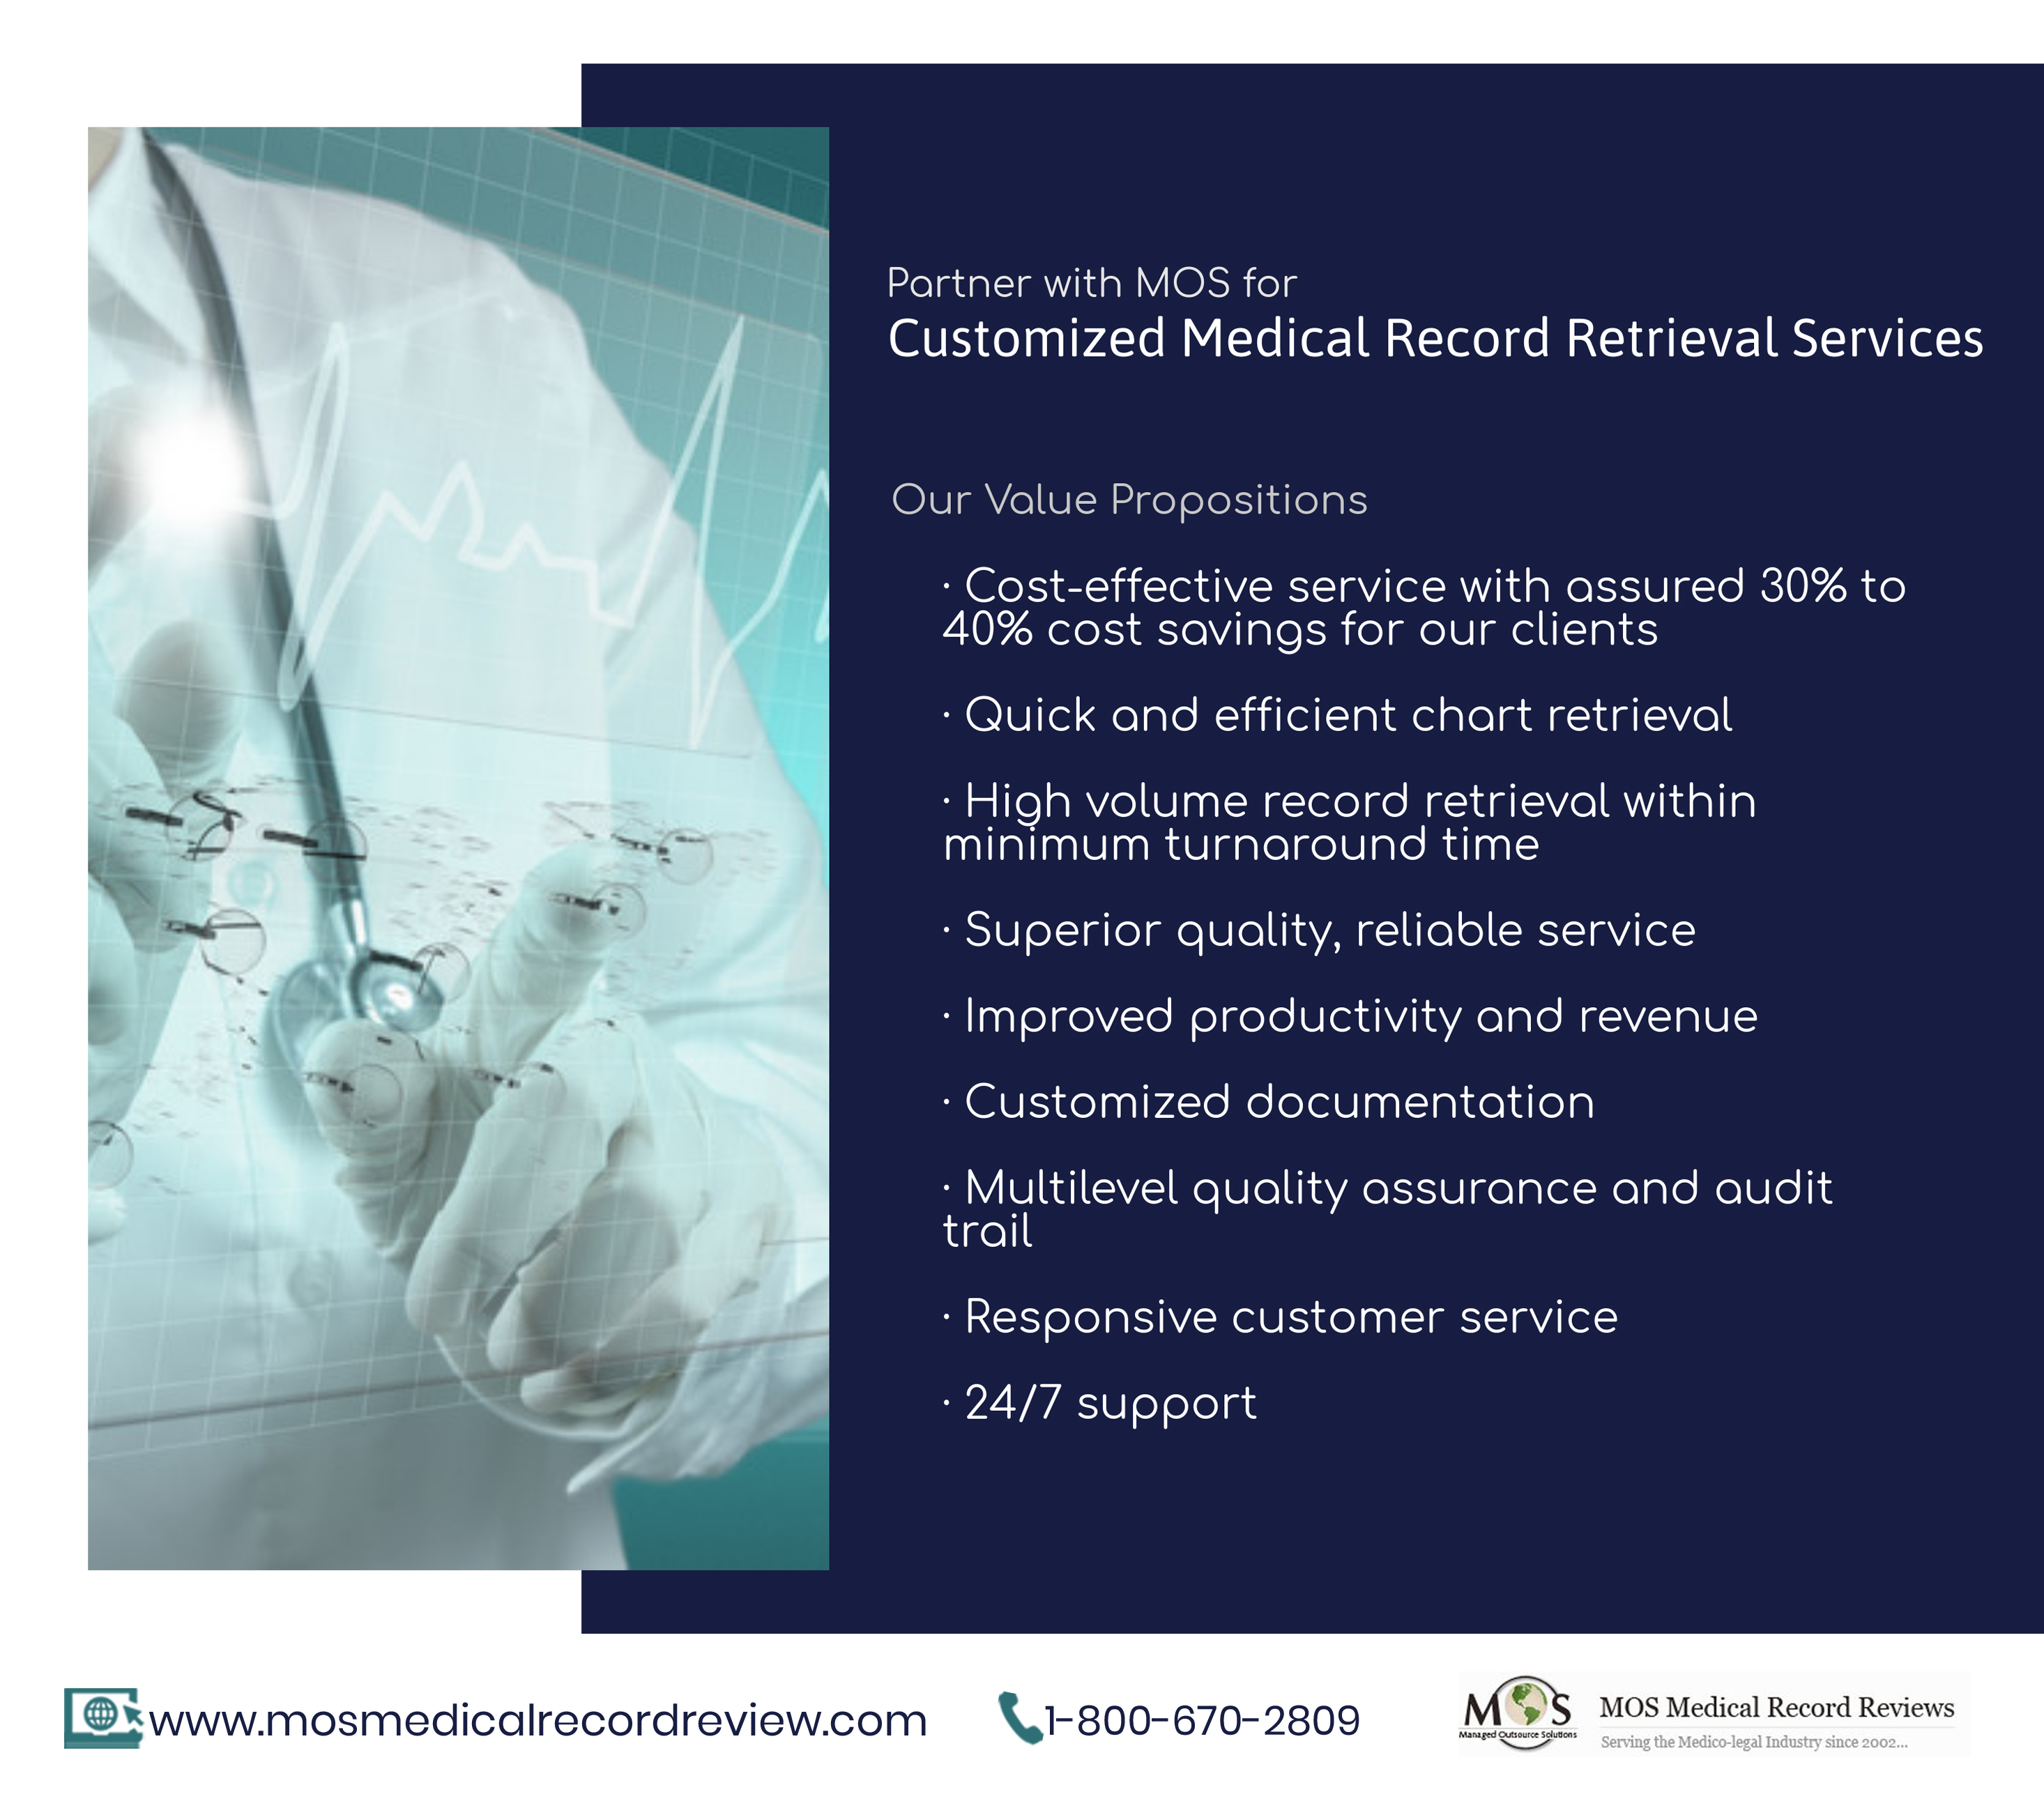 Partner with MOS for Customized Medical Record Retrieval Services